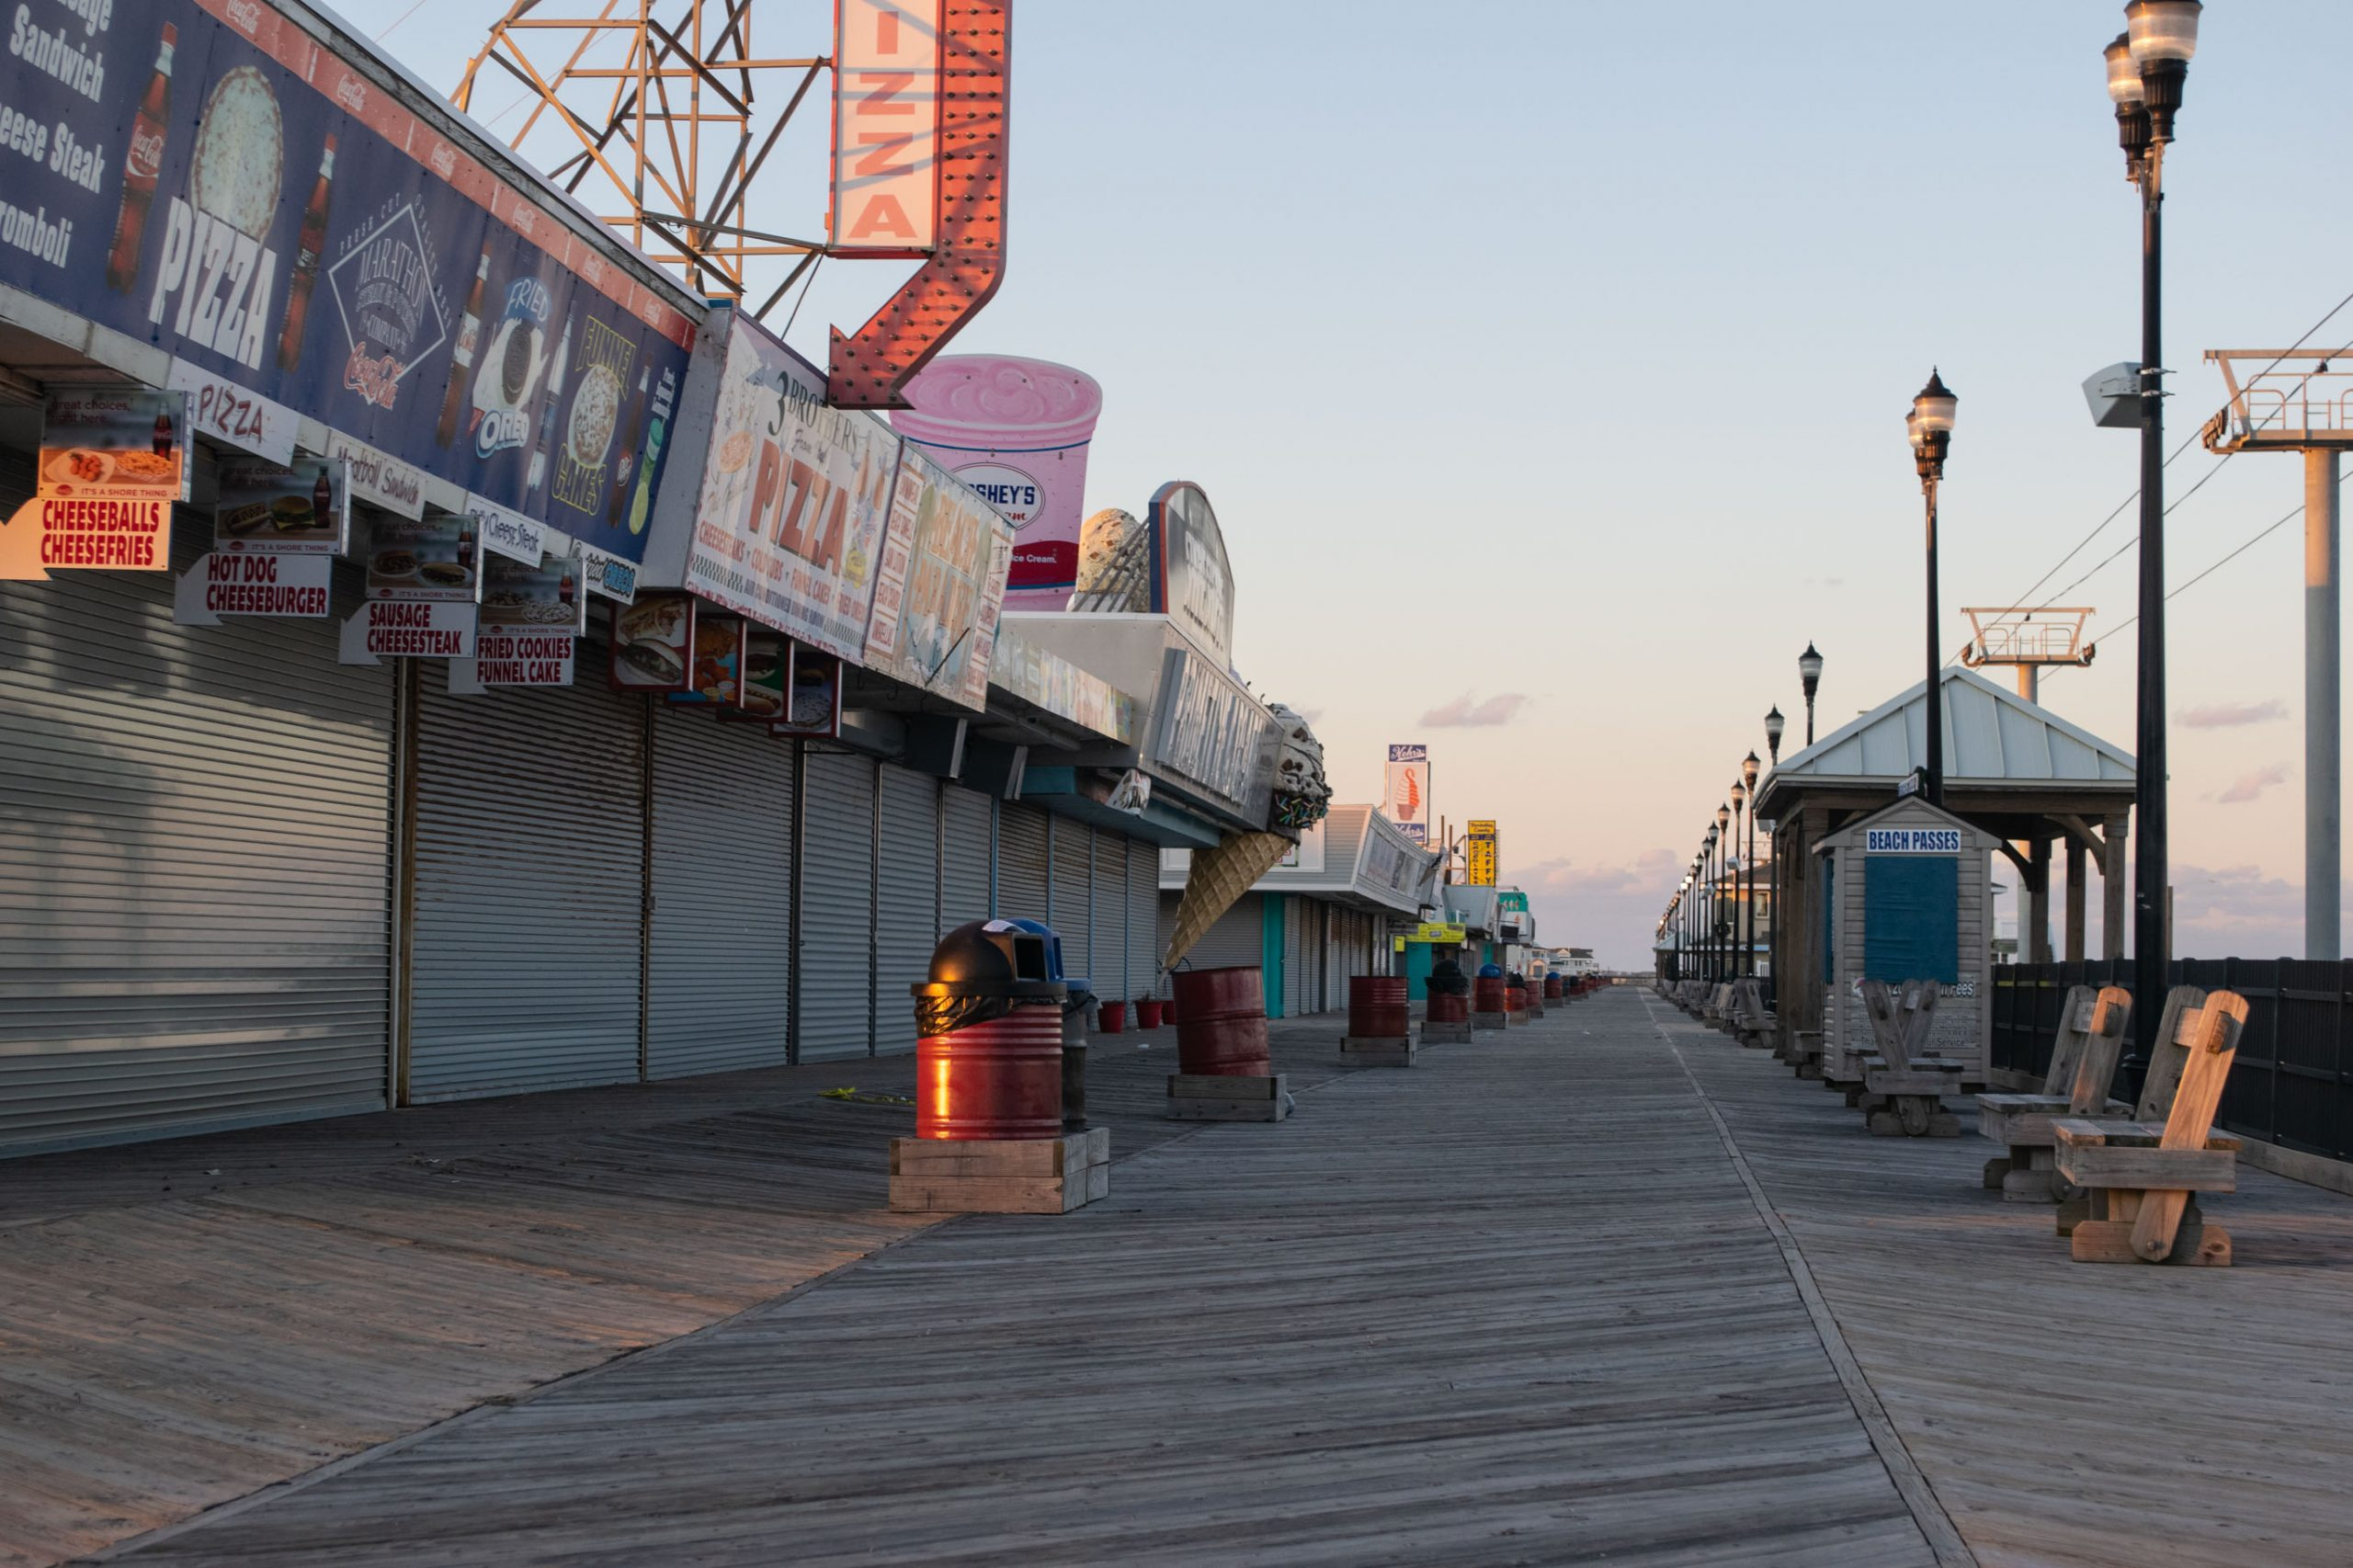 I Love SEASIDE HEIGHTS NEW JERSEY City Limit Sign